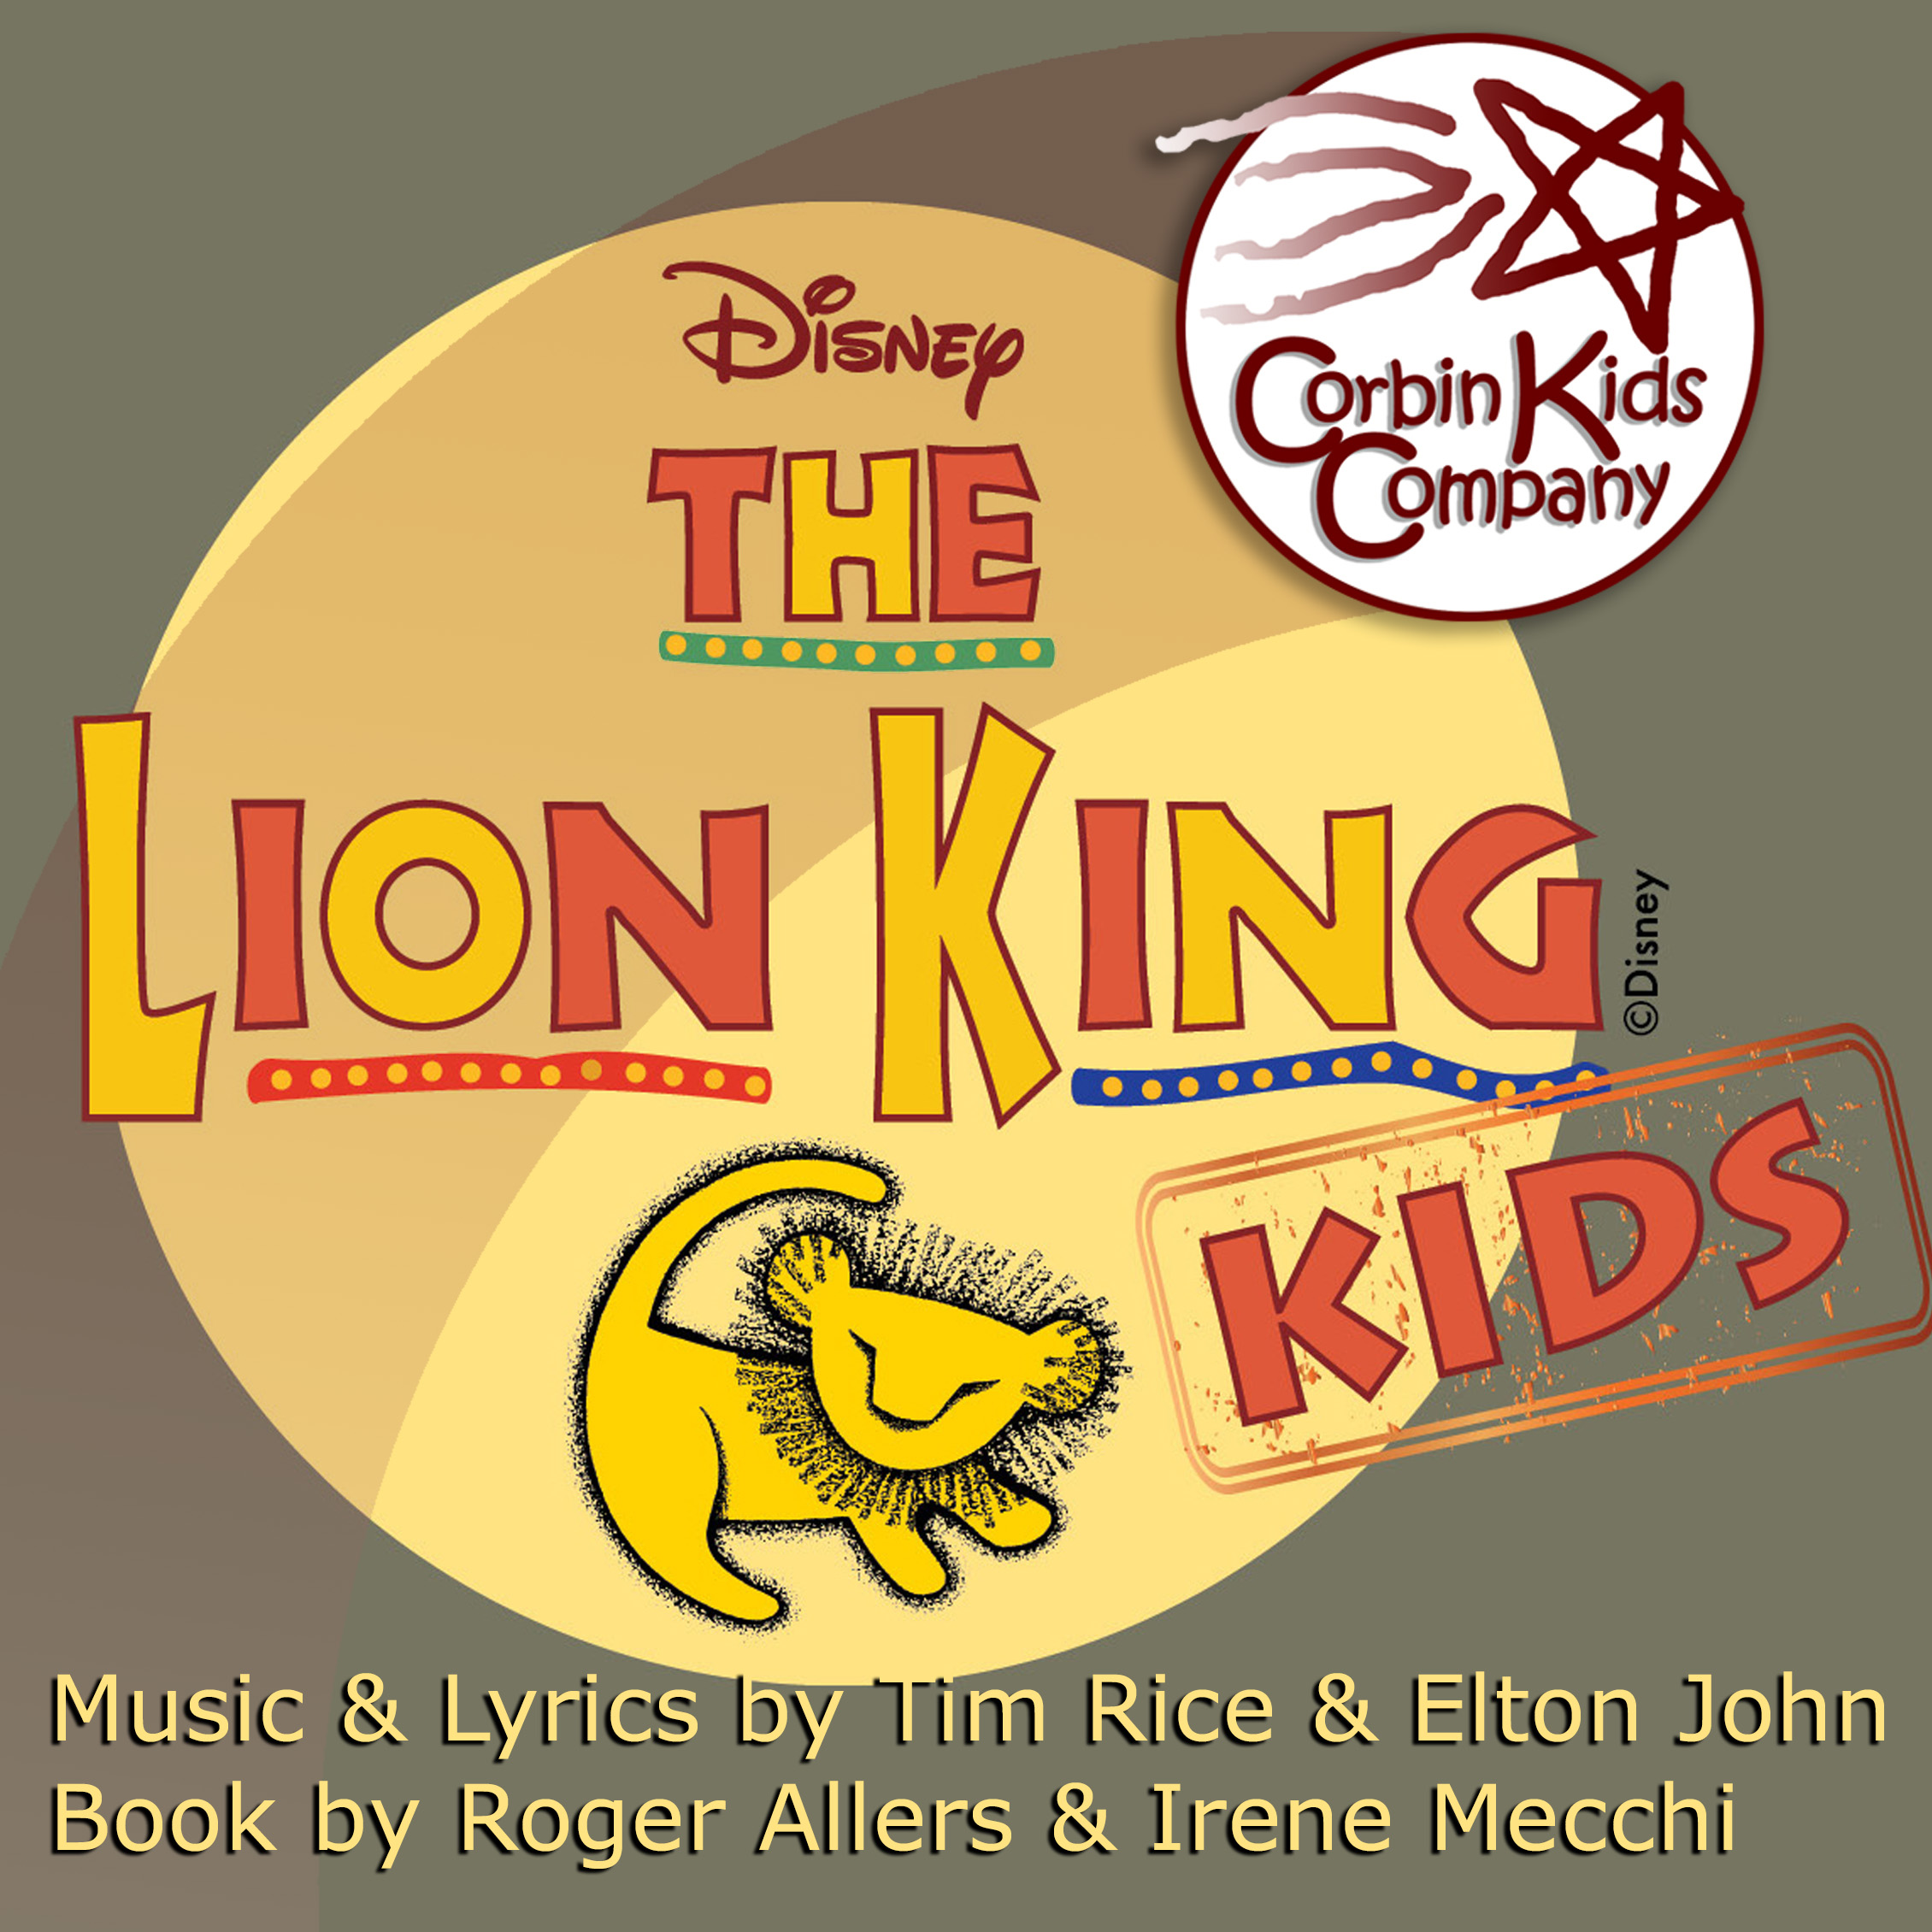 Lion King Kids Corbin Theatre